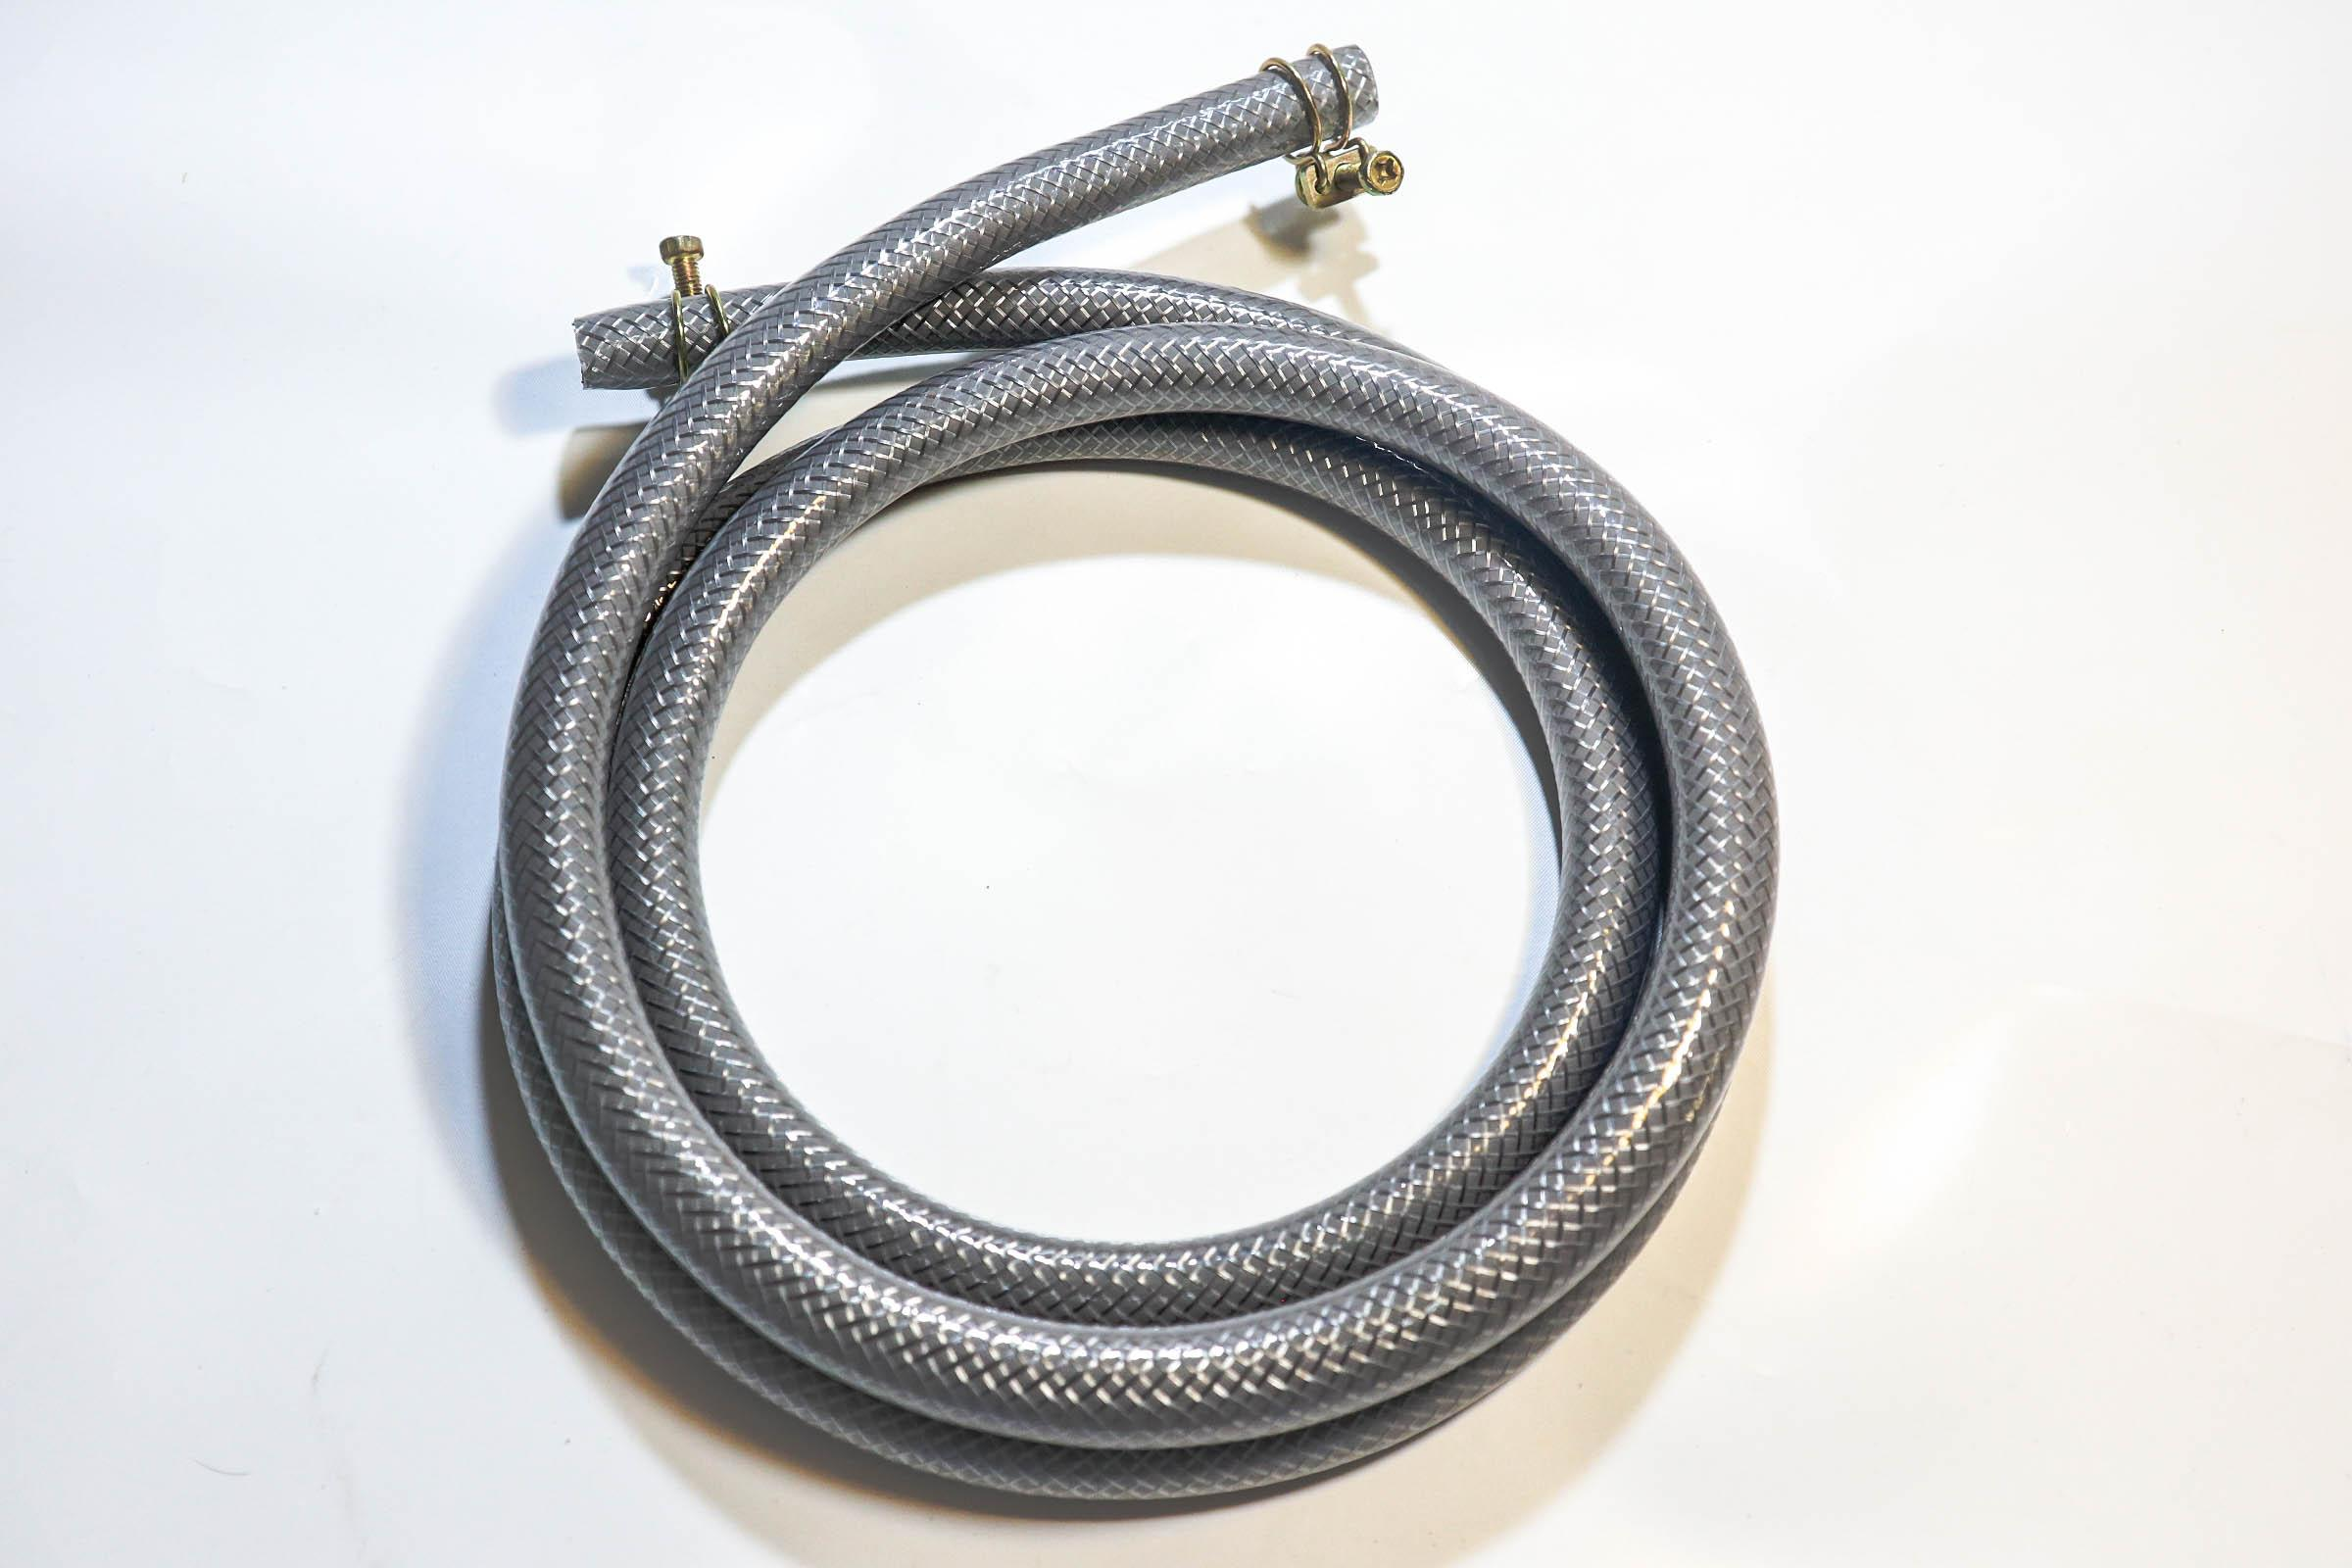 Lpg Gas Hose L Quality Stainless Braided Safety Hose 1.75m By Mp Marketing By Mp Marketing.